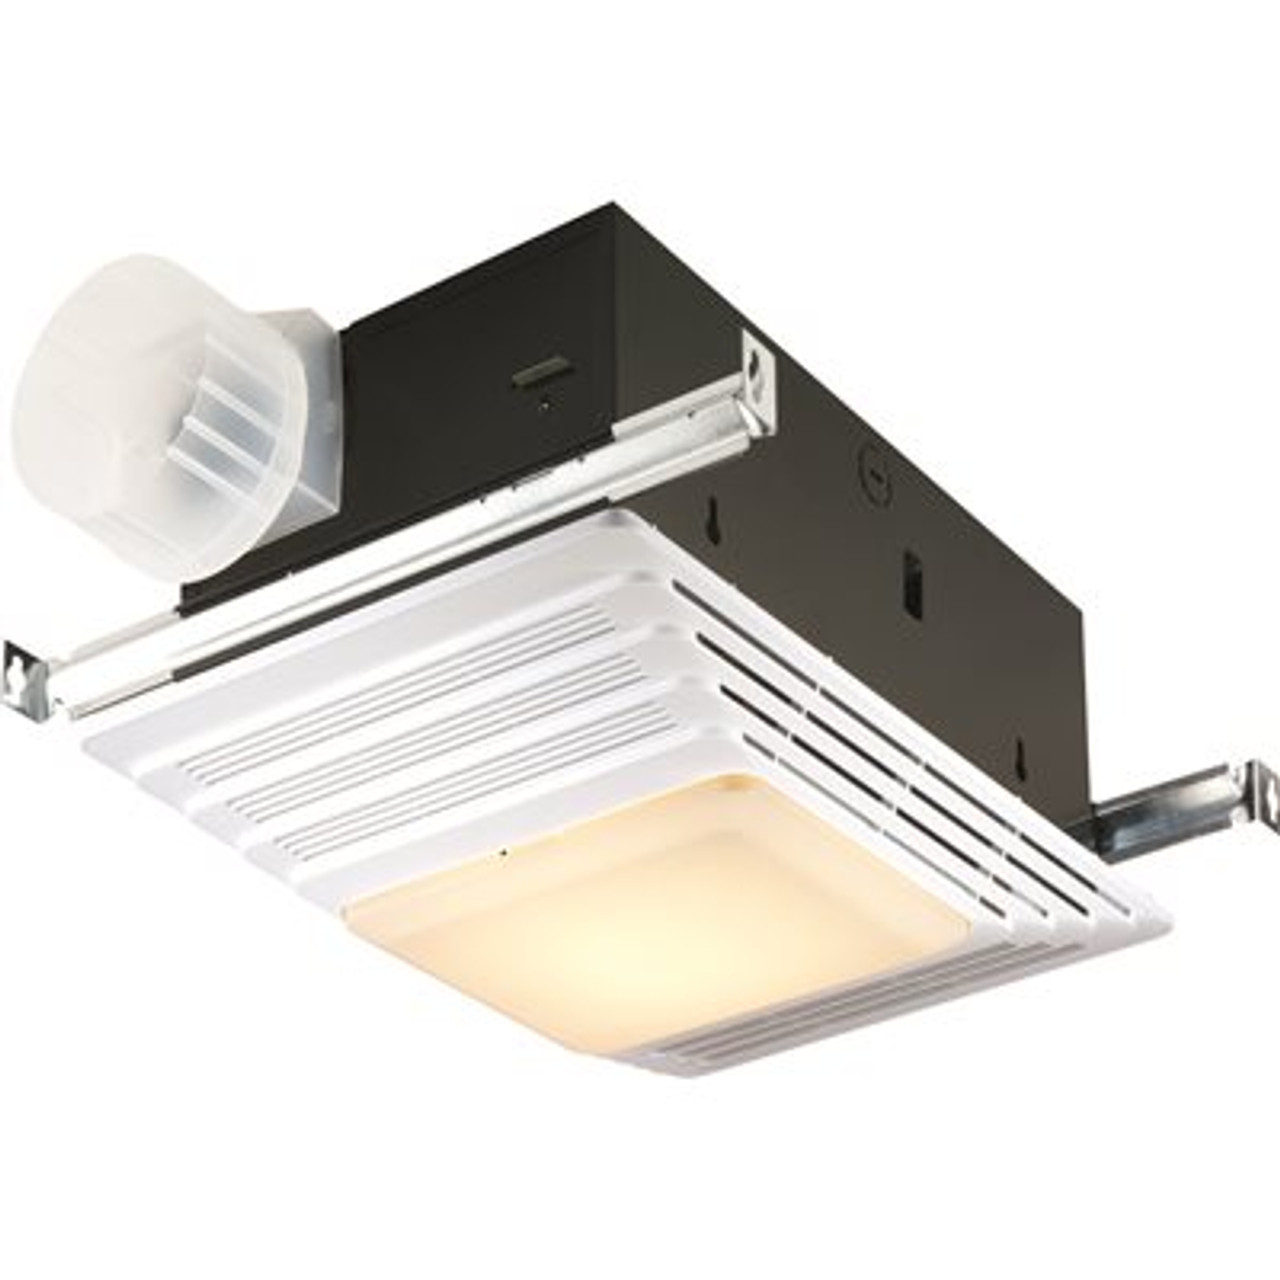 BROAN 657 CEILING EXHAUST FAN WITH LIGHT WHITE GRILLE | BROWN PALLET